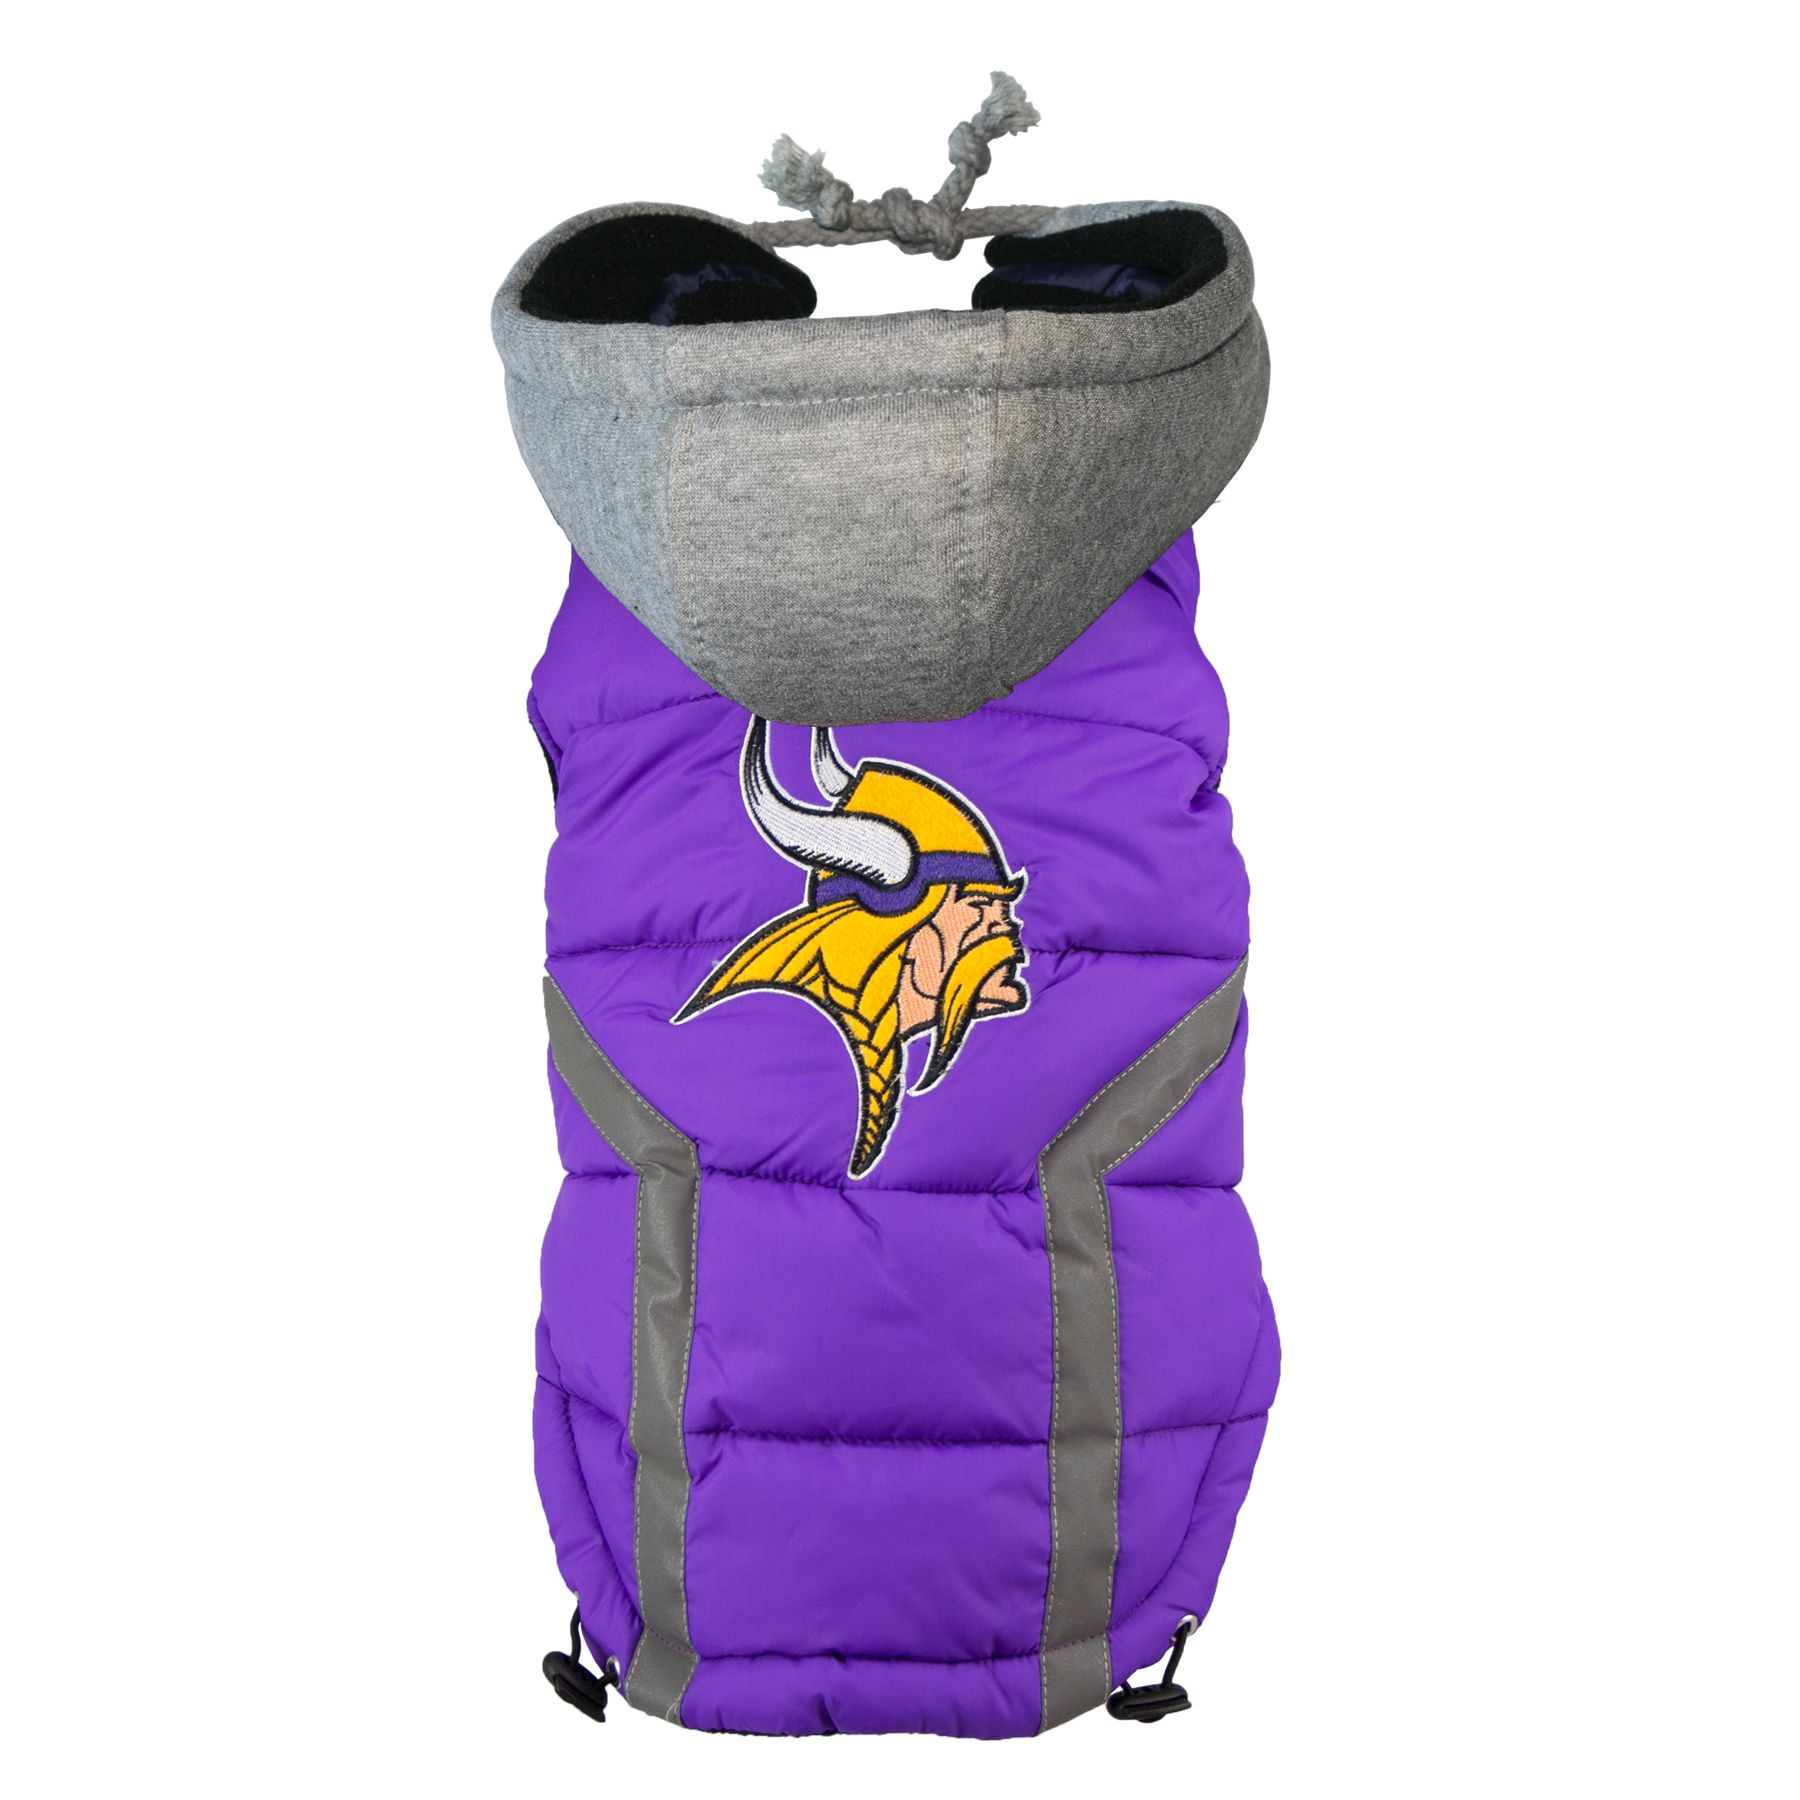 Minnesota Vikings NFL Puffer Vest size: 3X Large, Hip Doggie photo